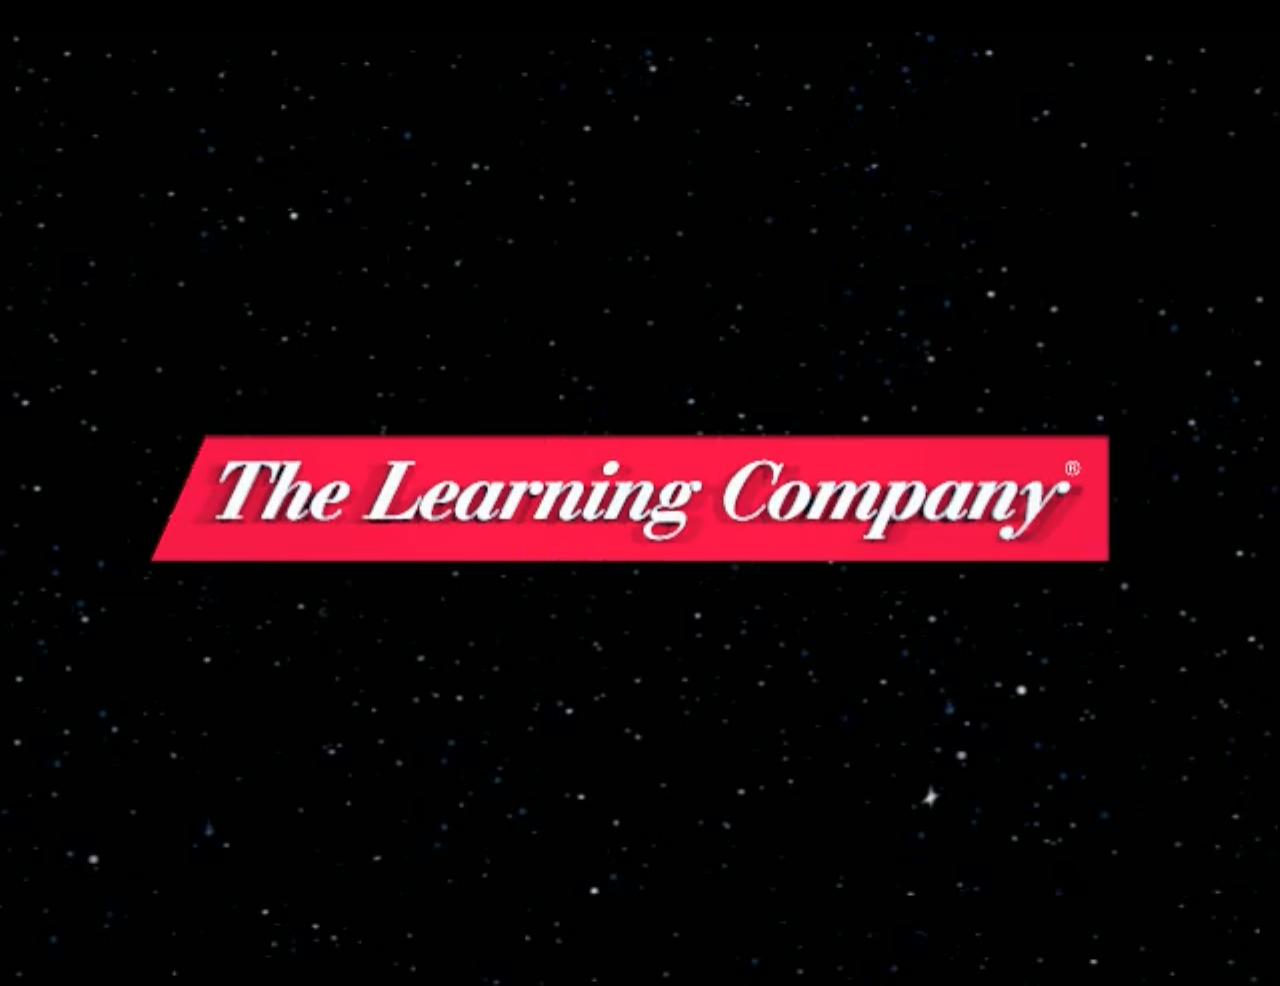 The Learning Company from the 1980's.